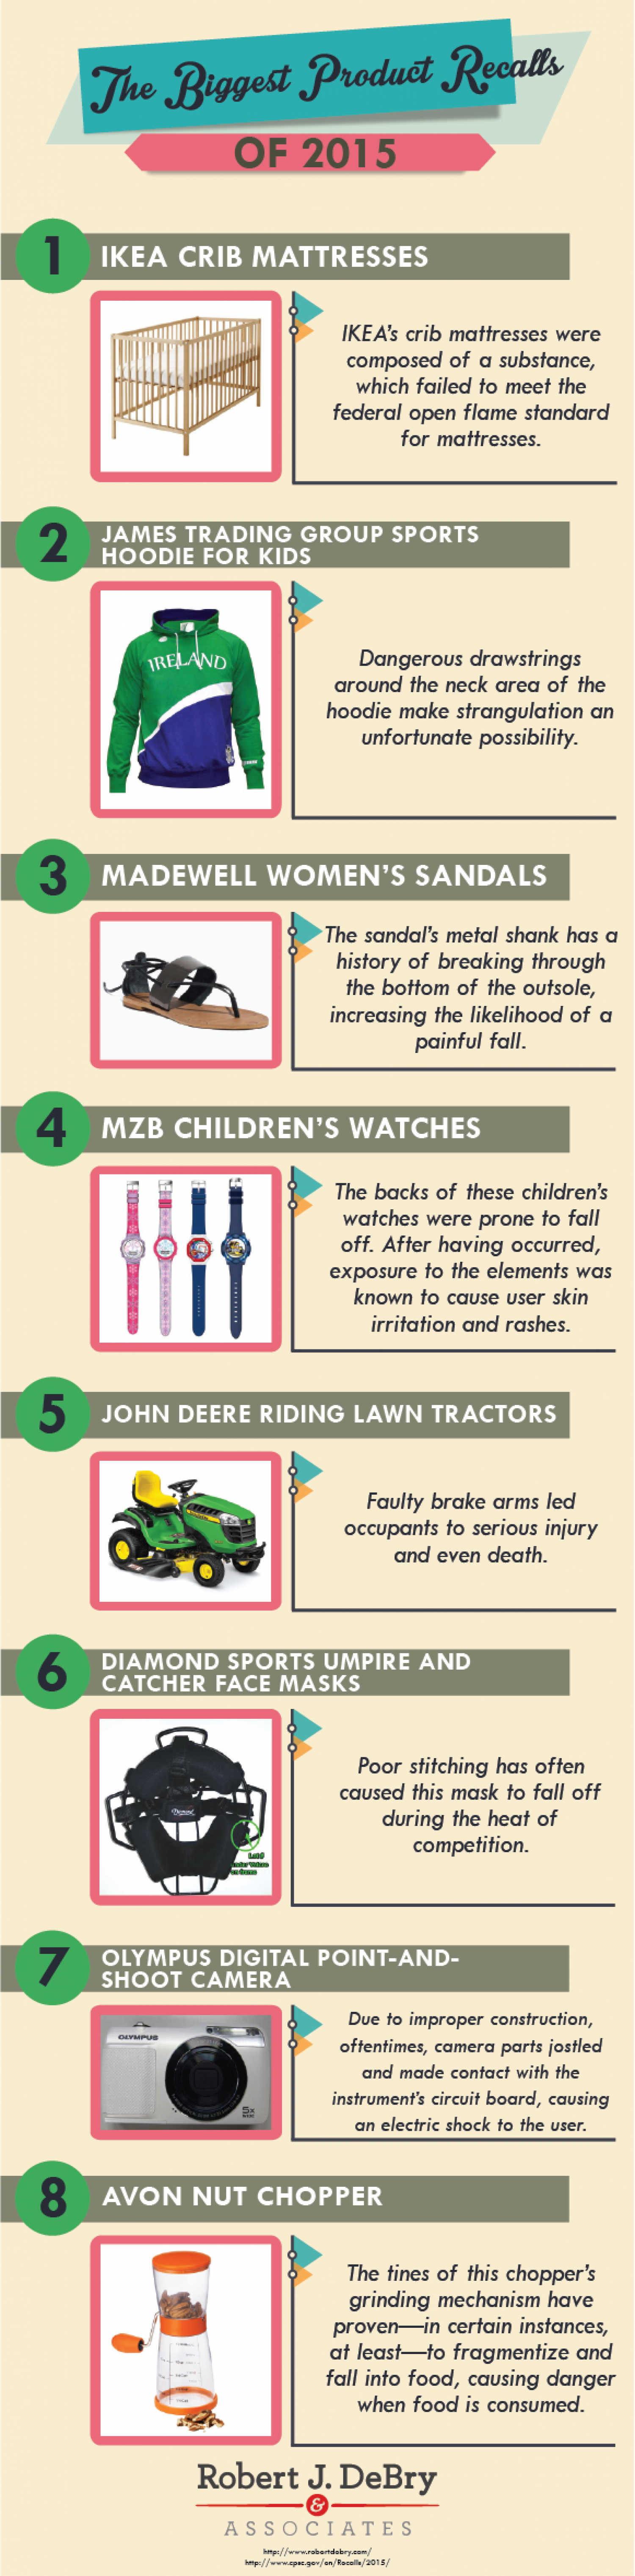 Some of the Biggest, Most Interesting Product Recalls of 2015 Infographic